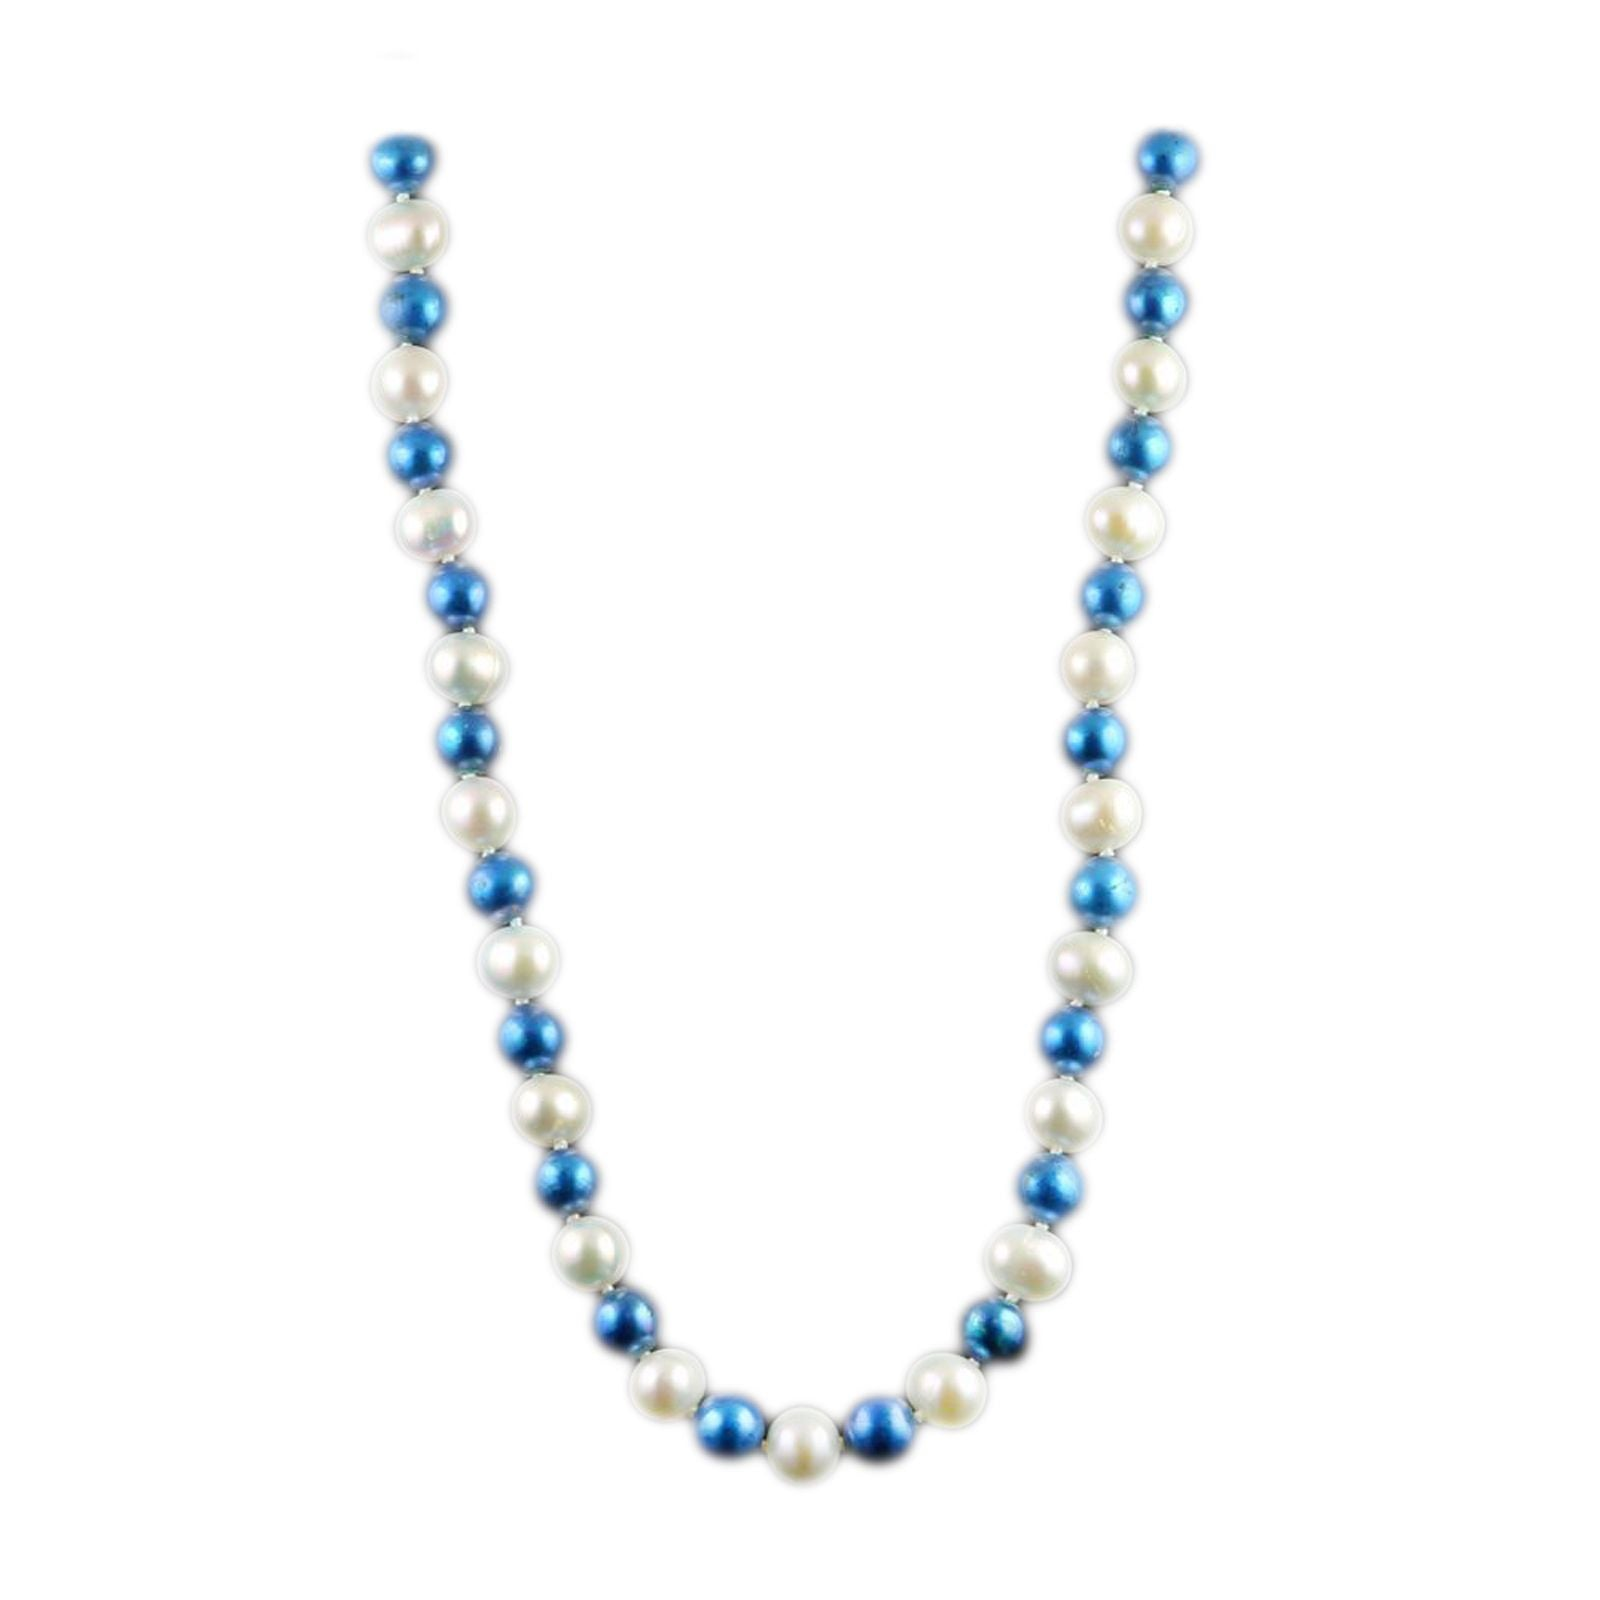 SPECIAL! Collegiate University of Kentucky Blue and White Pearl Necklace